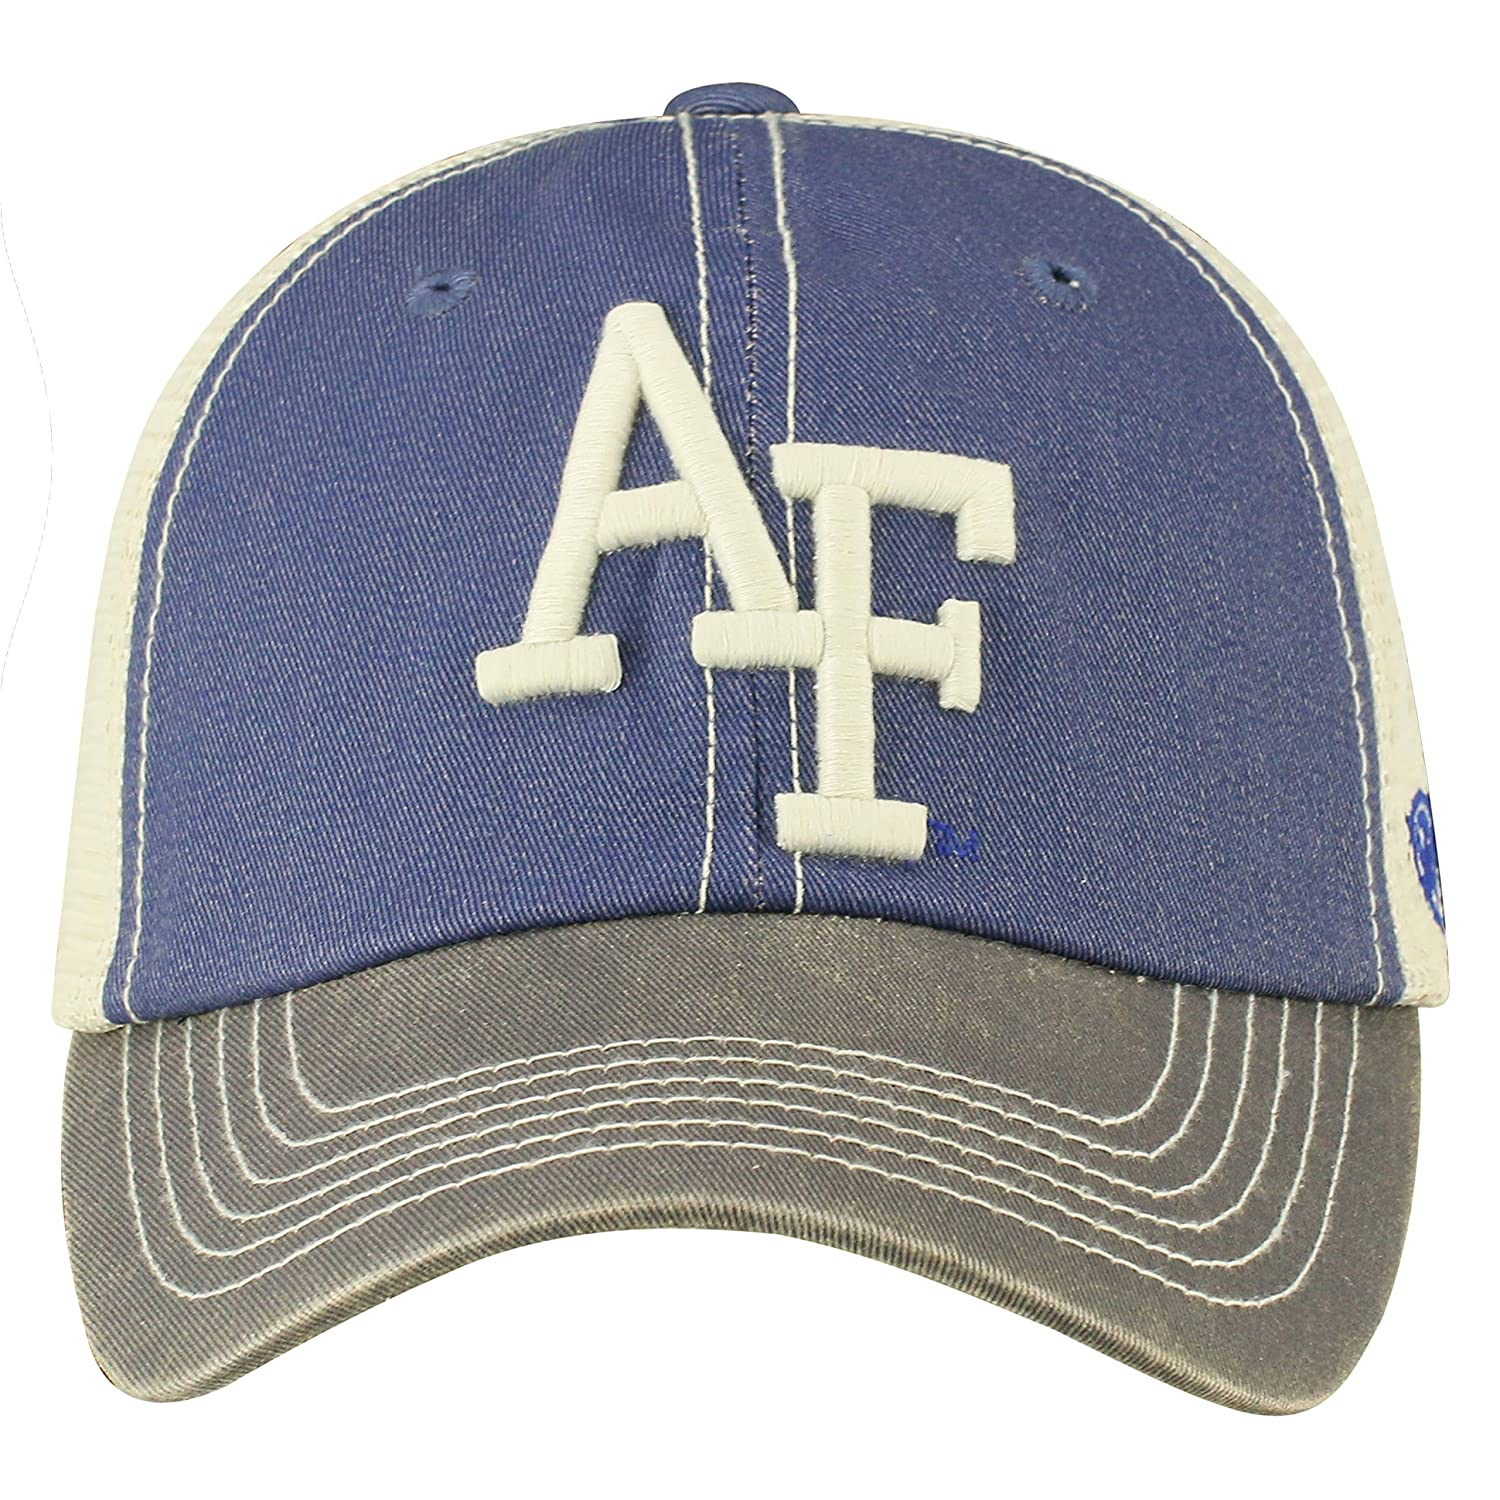 half off 50654 ebaf8 Amazon.com   Top of the World Adult Unisex s Offroad Snapback Mesh Back Adjustable  Hat, Air Force Falcons Royal, One Size   Clothing